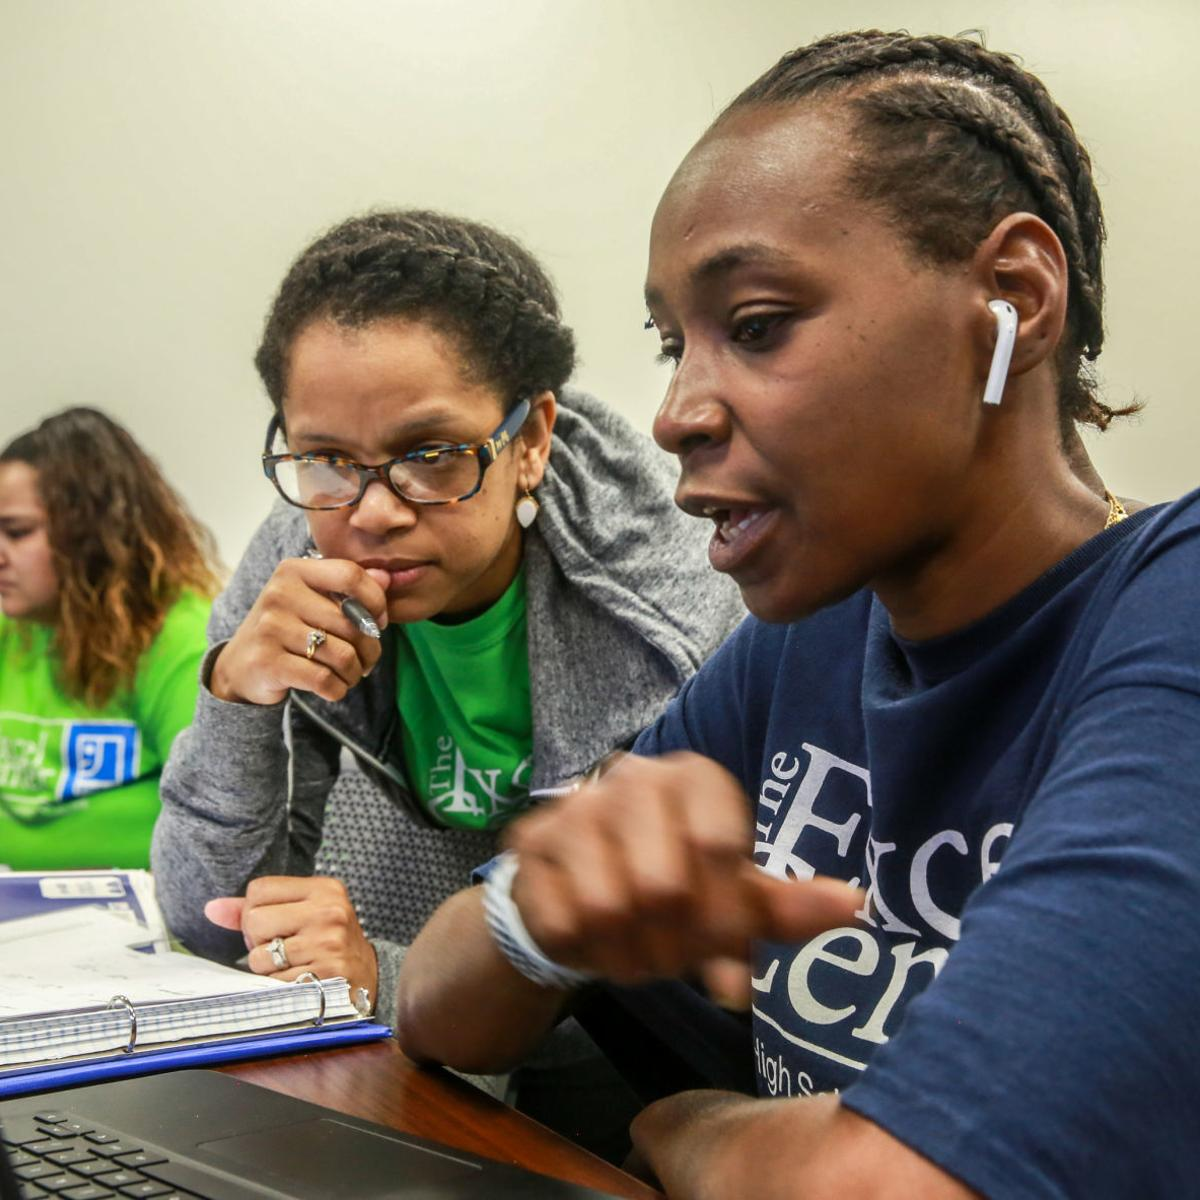 Free Spreading Pics spreading goodwill: new $8m campus aims to create jobs